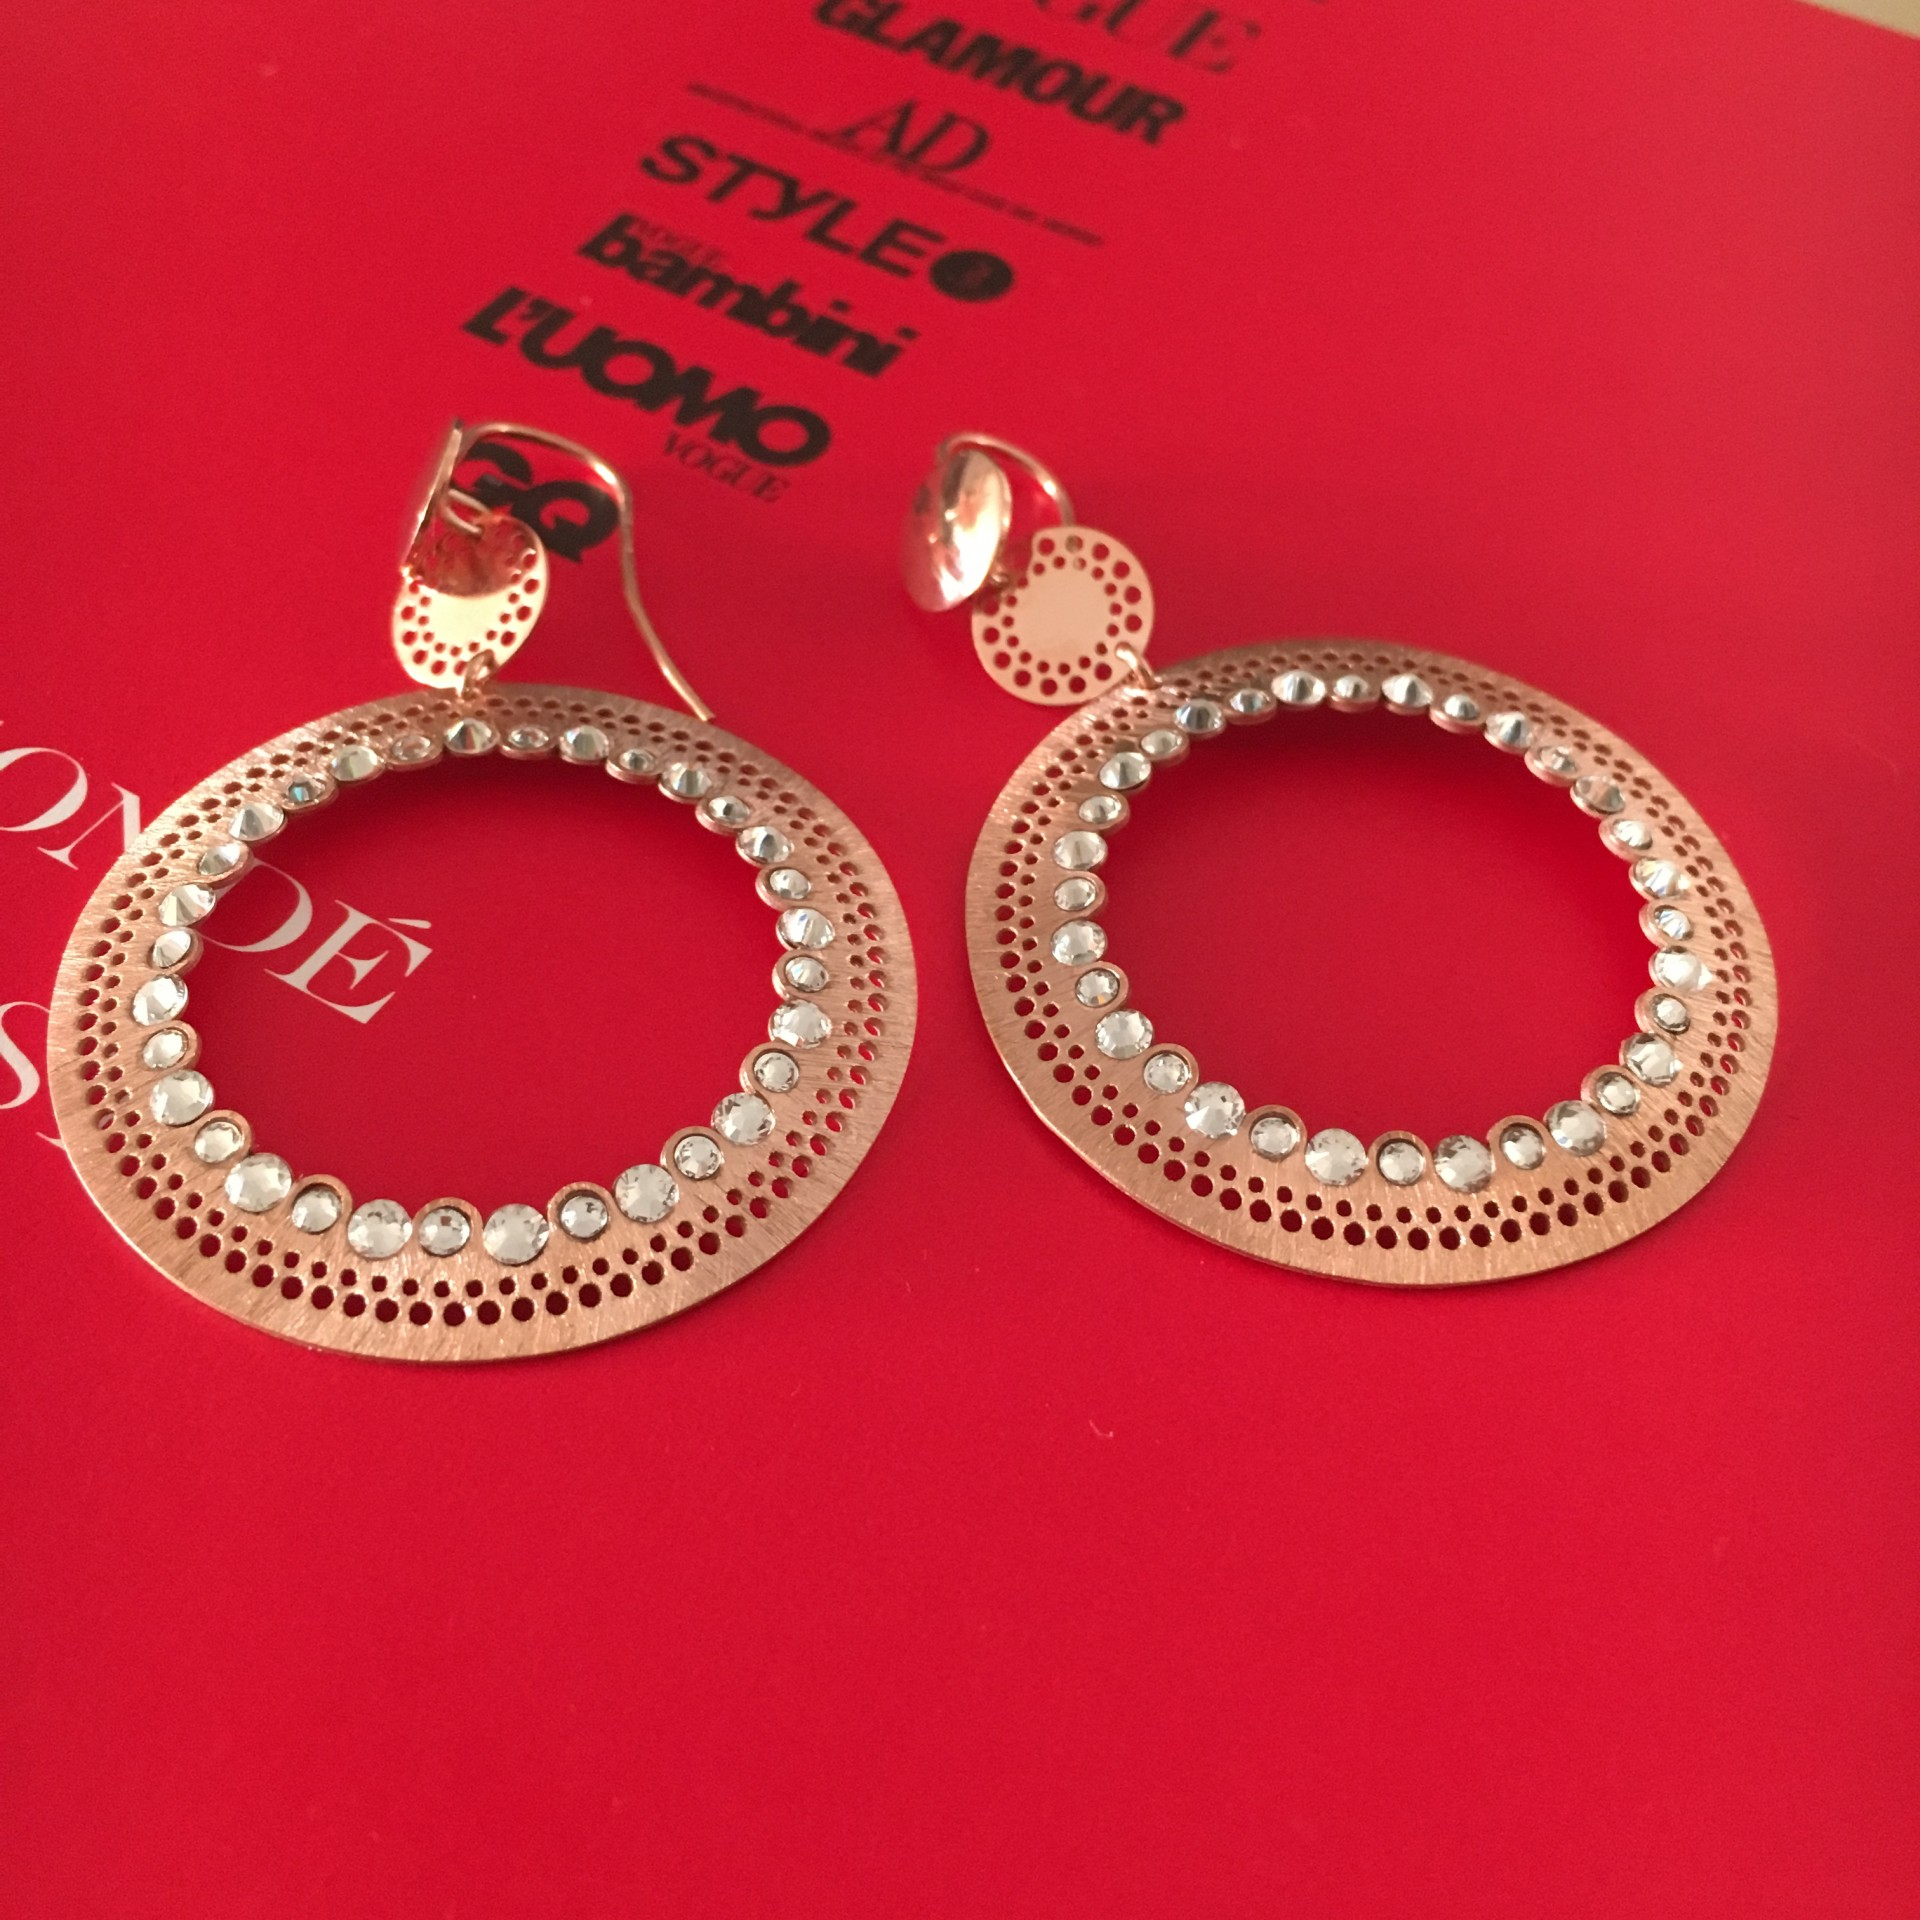 The Ethnic in Rose silver earrings